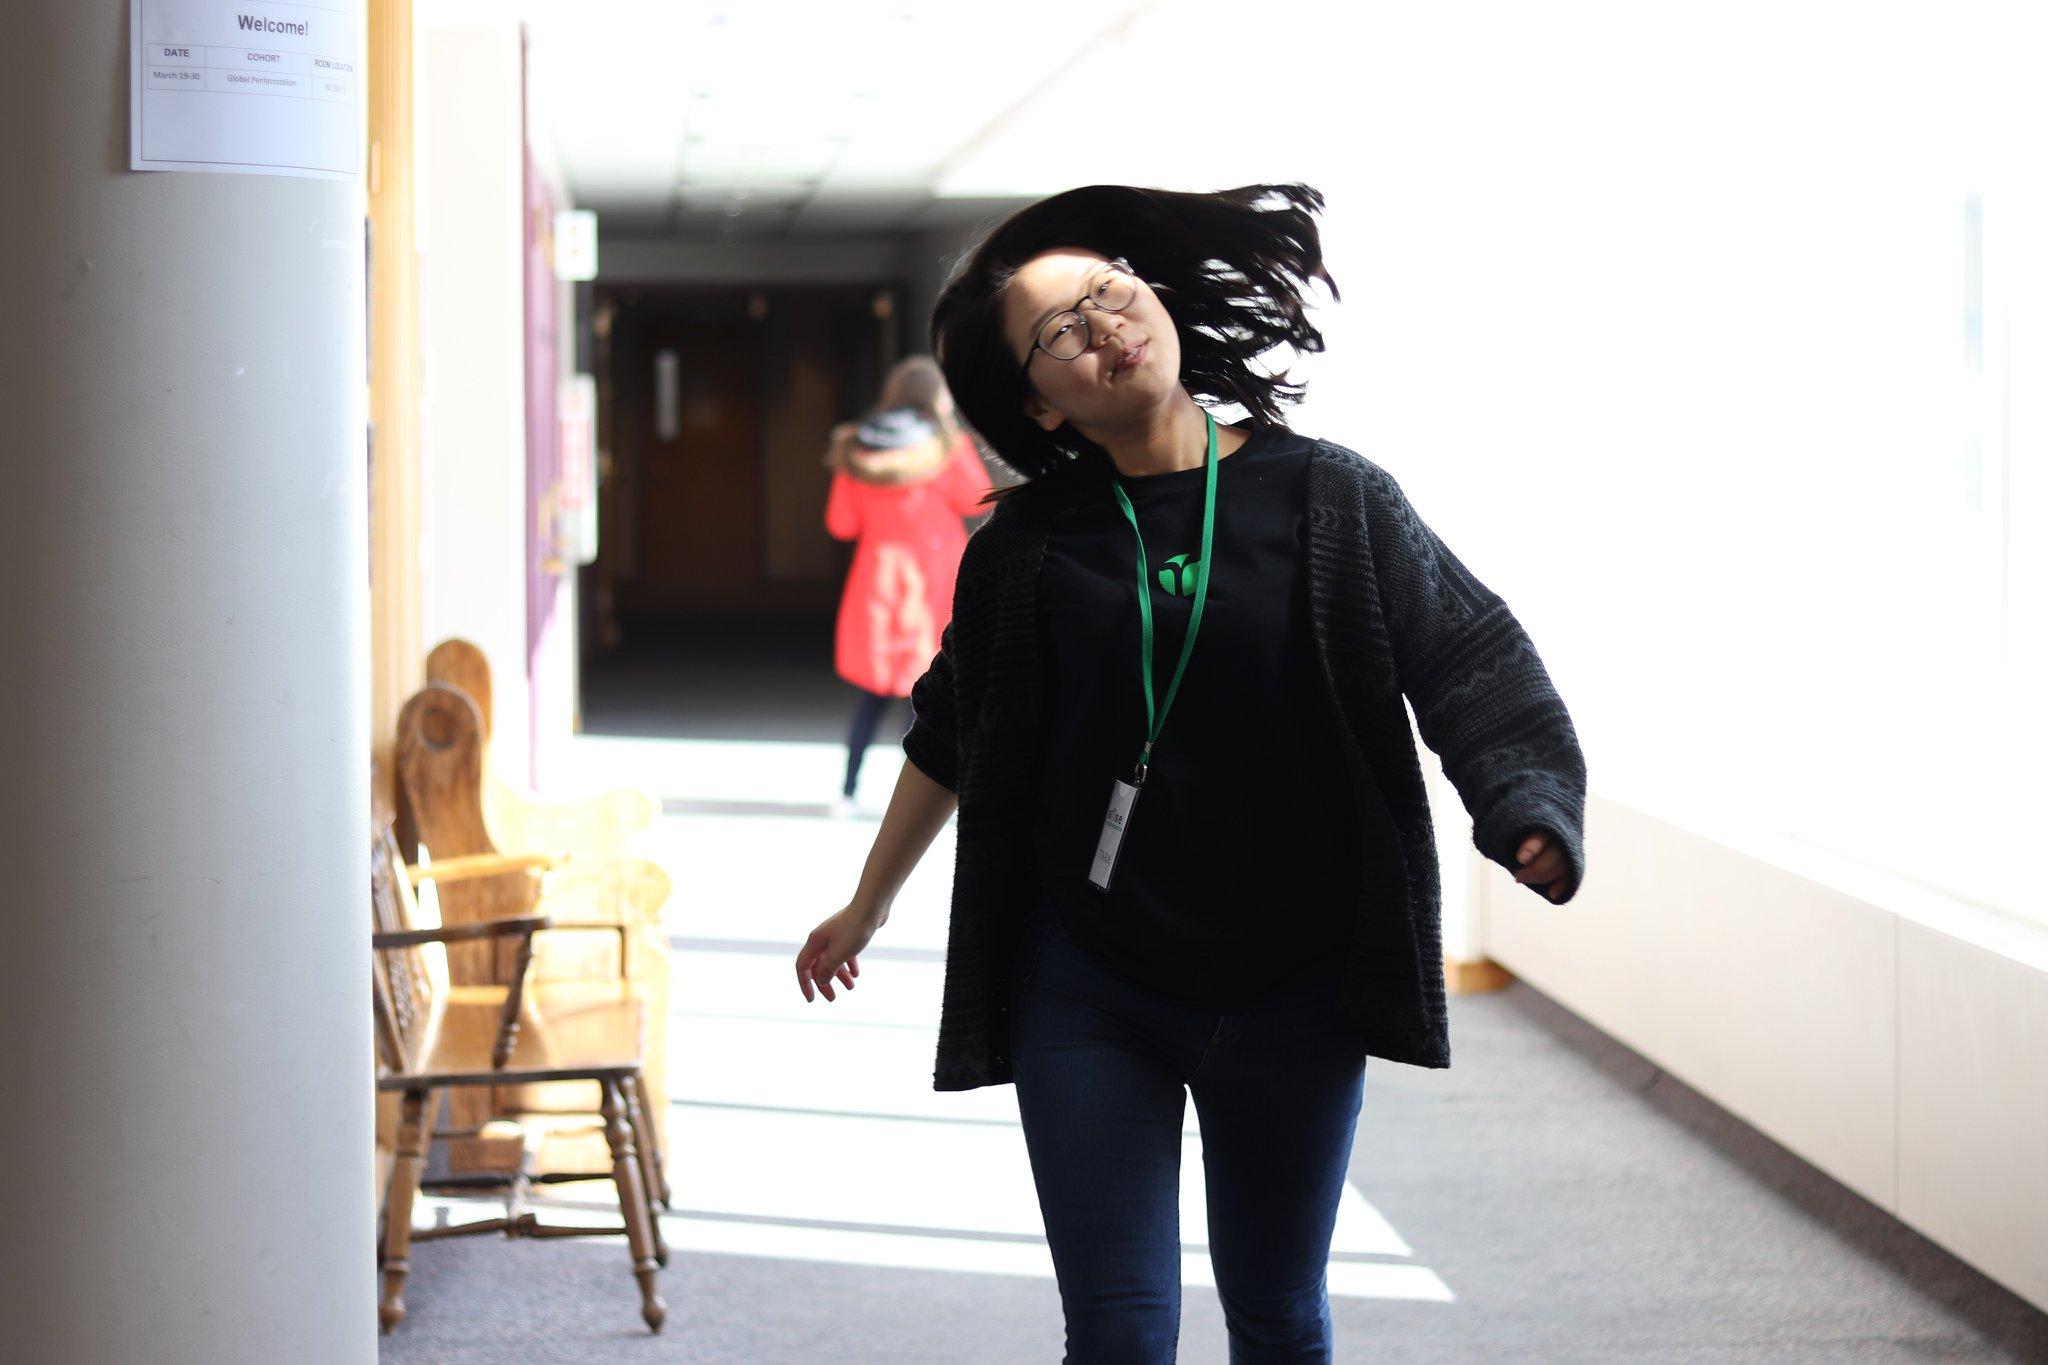 One of our beloved staff members, Tara, in her natural state of joy. (We know. She brightens up our lives too.) (Don't kill us for using this, Tara. We love you!)